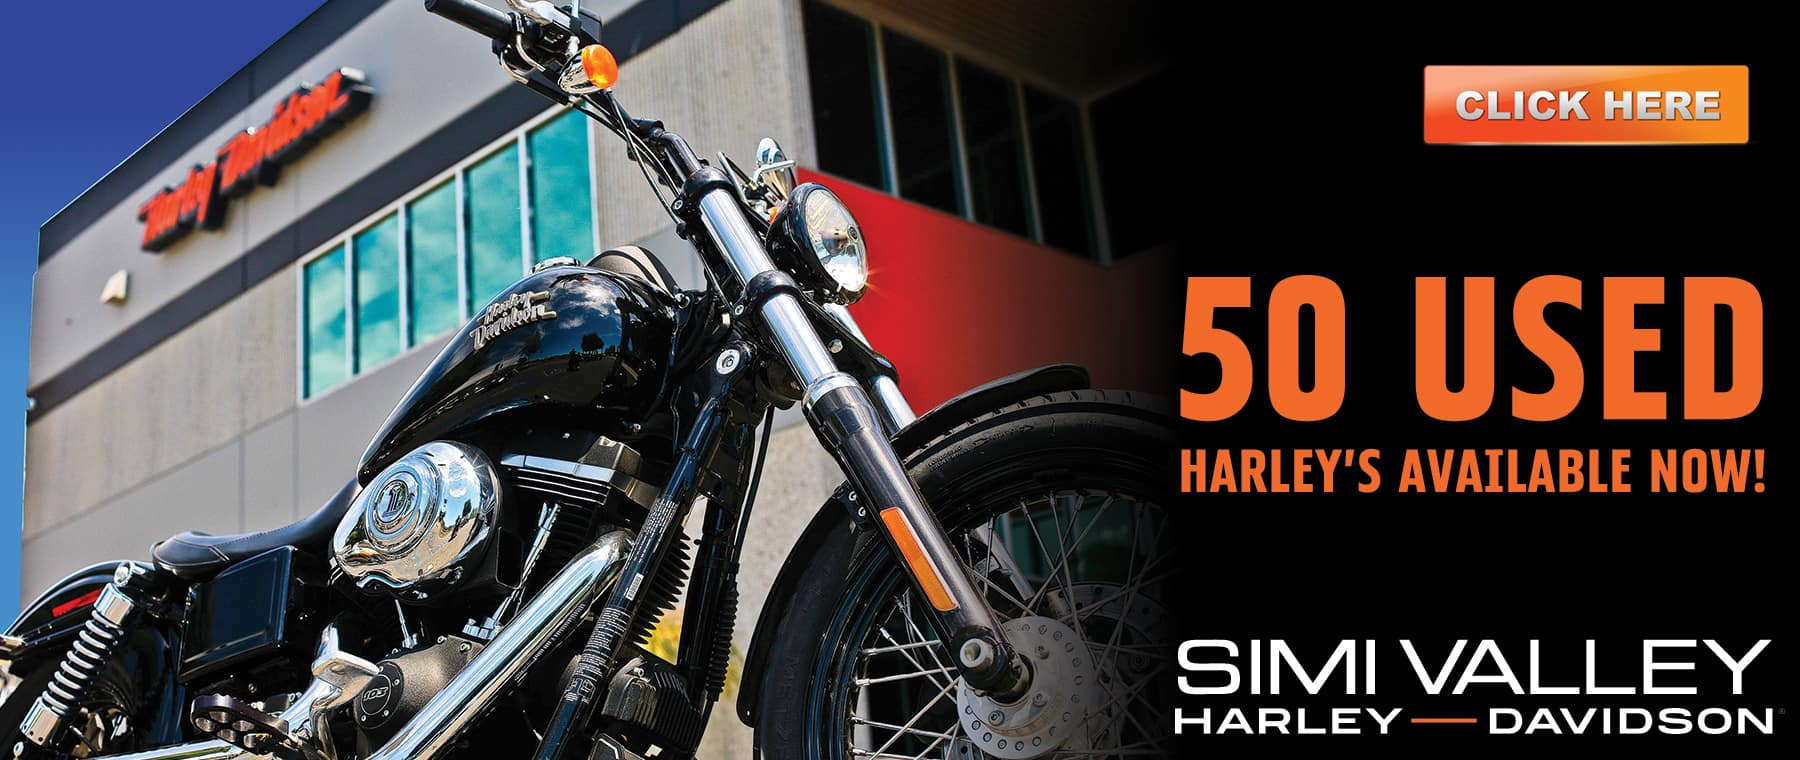 50-Used-harleys-march-2021-now